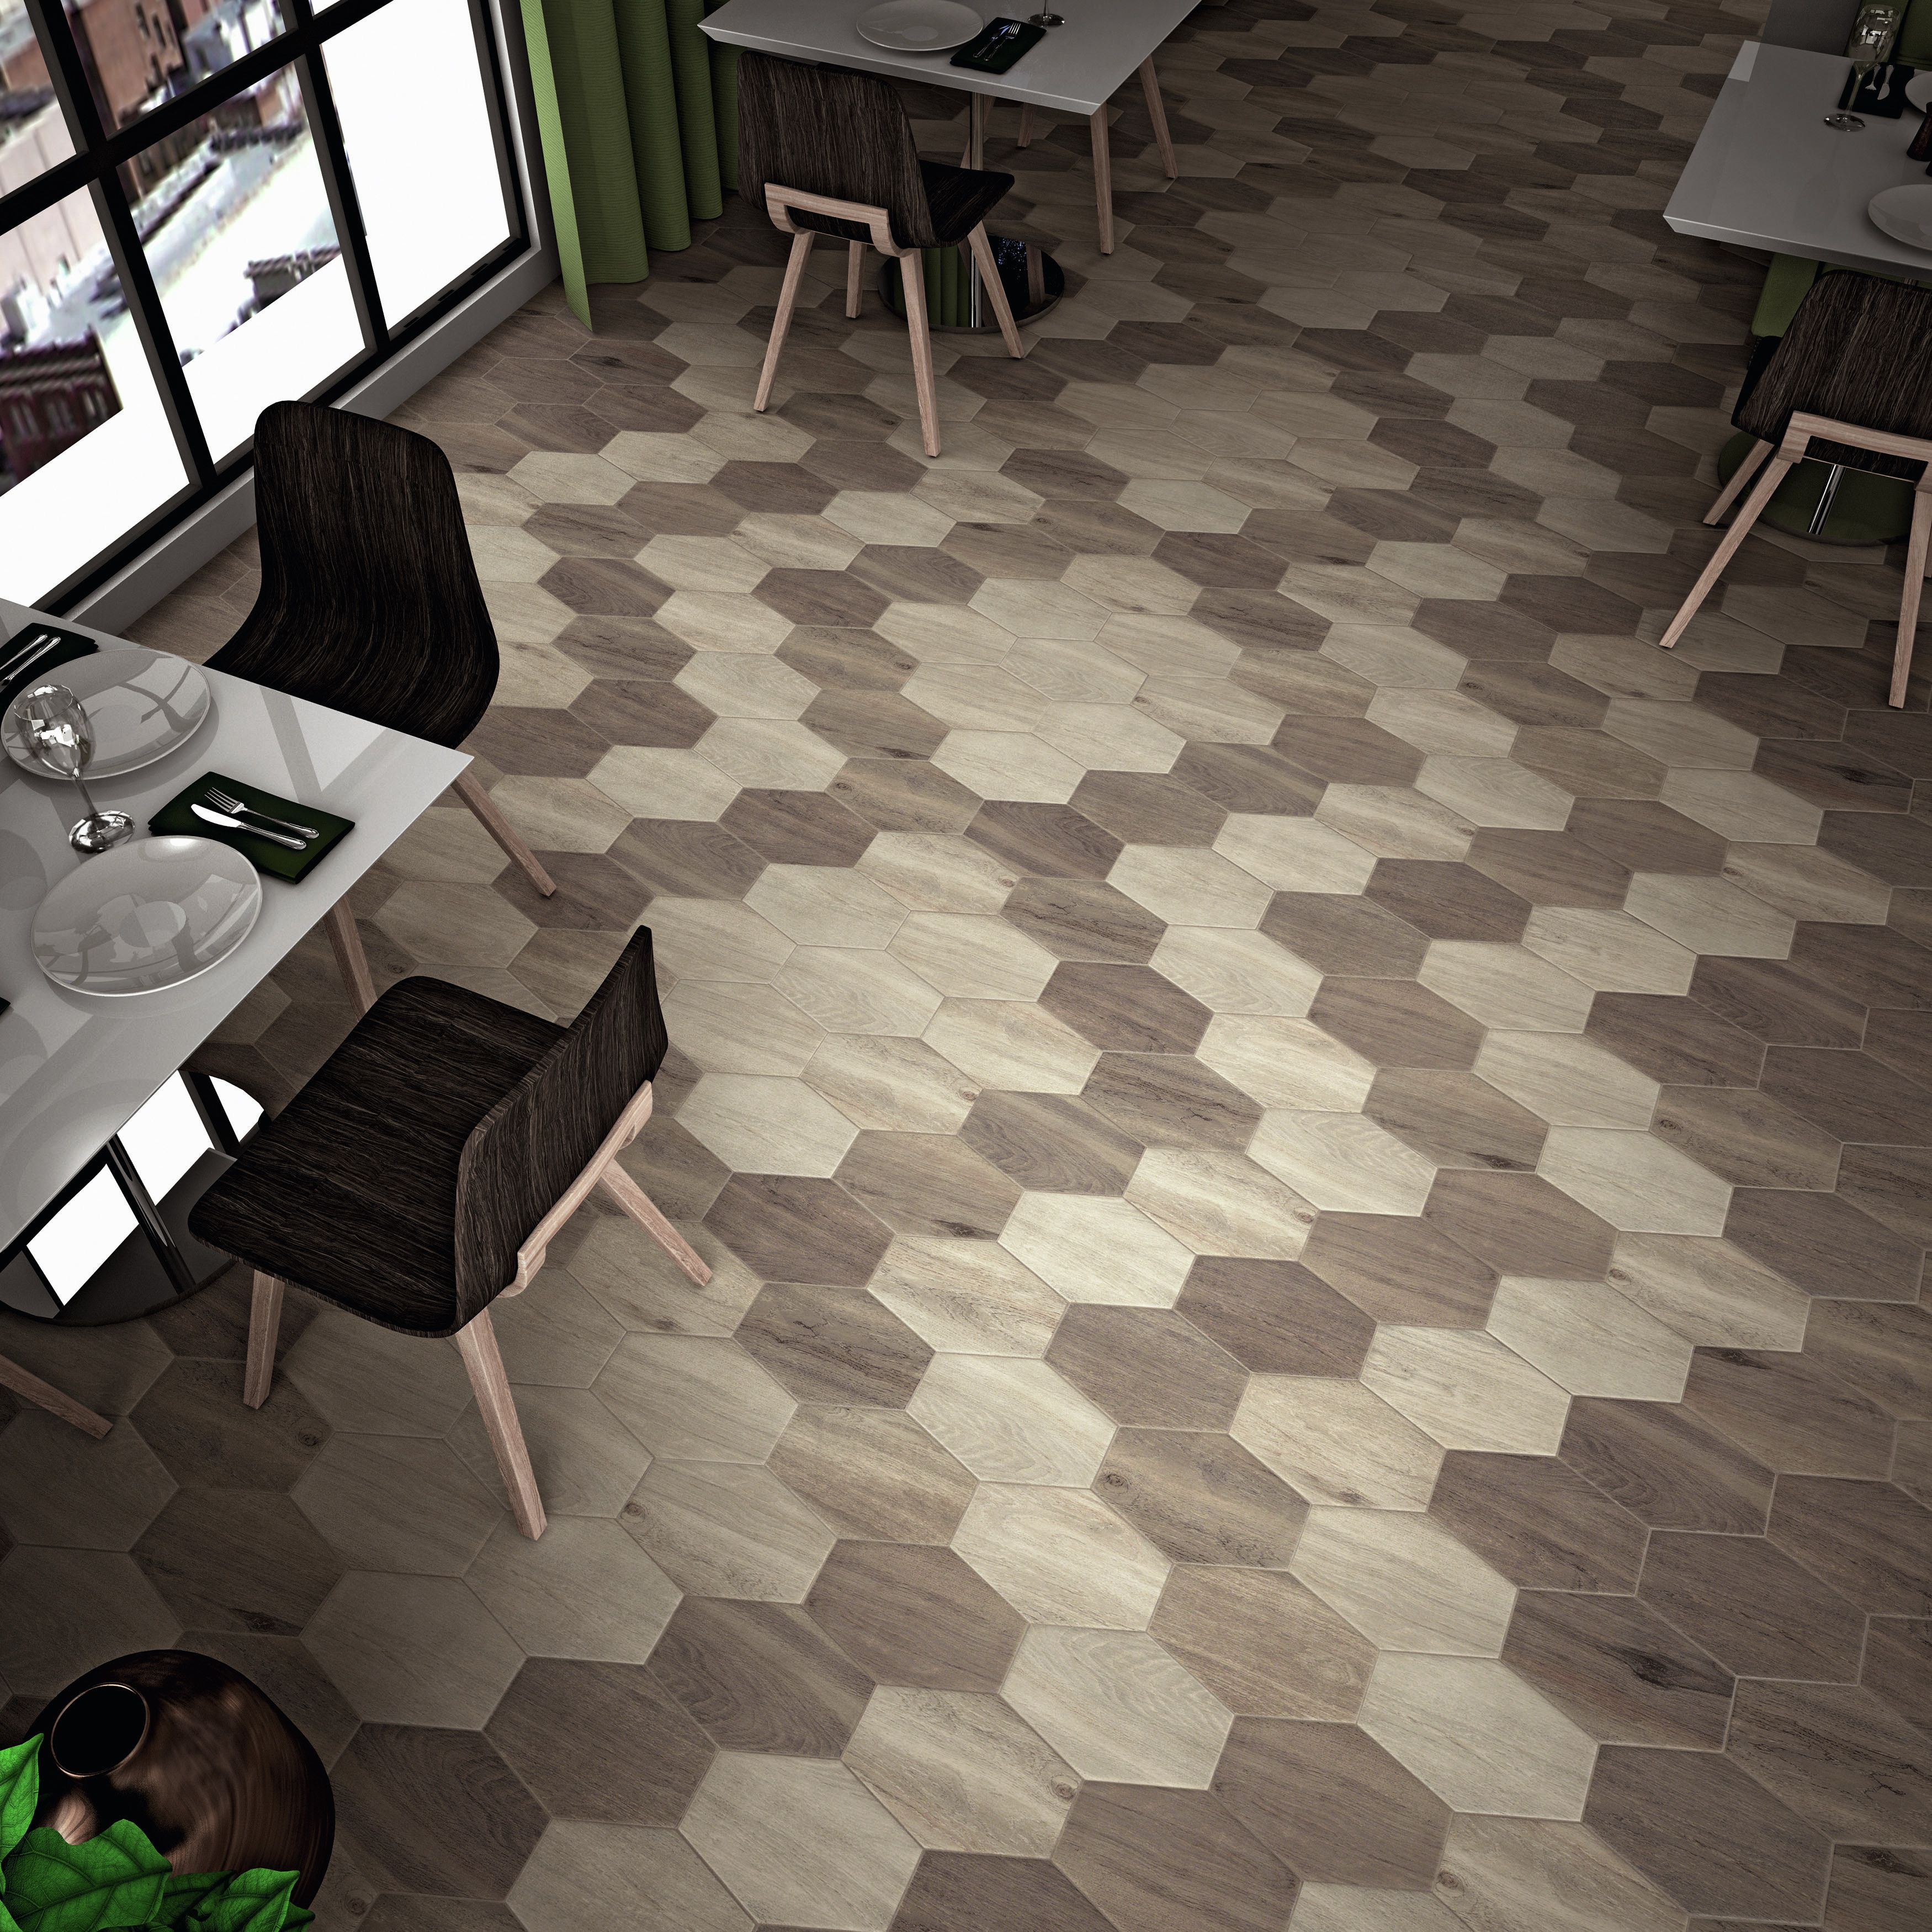 Elitetile egurra 838 x 1175 porcelain wood look tile in wall the somertile legno hex irr tilo porcelain floor and wall tile offers the look of a hardwood floor with the durability of a tile dailygadgetfo Images